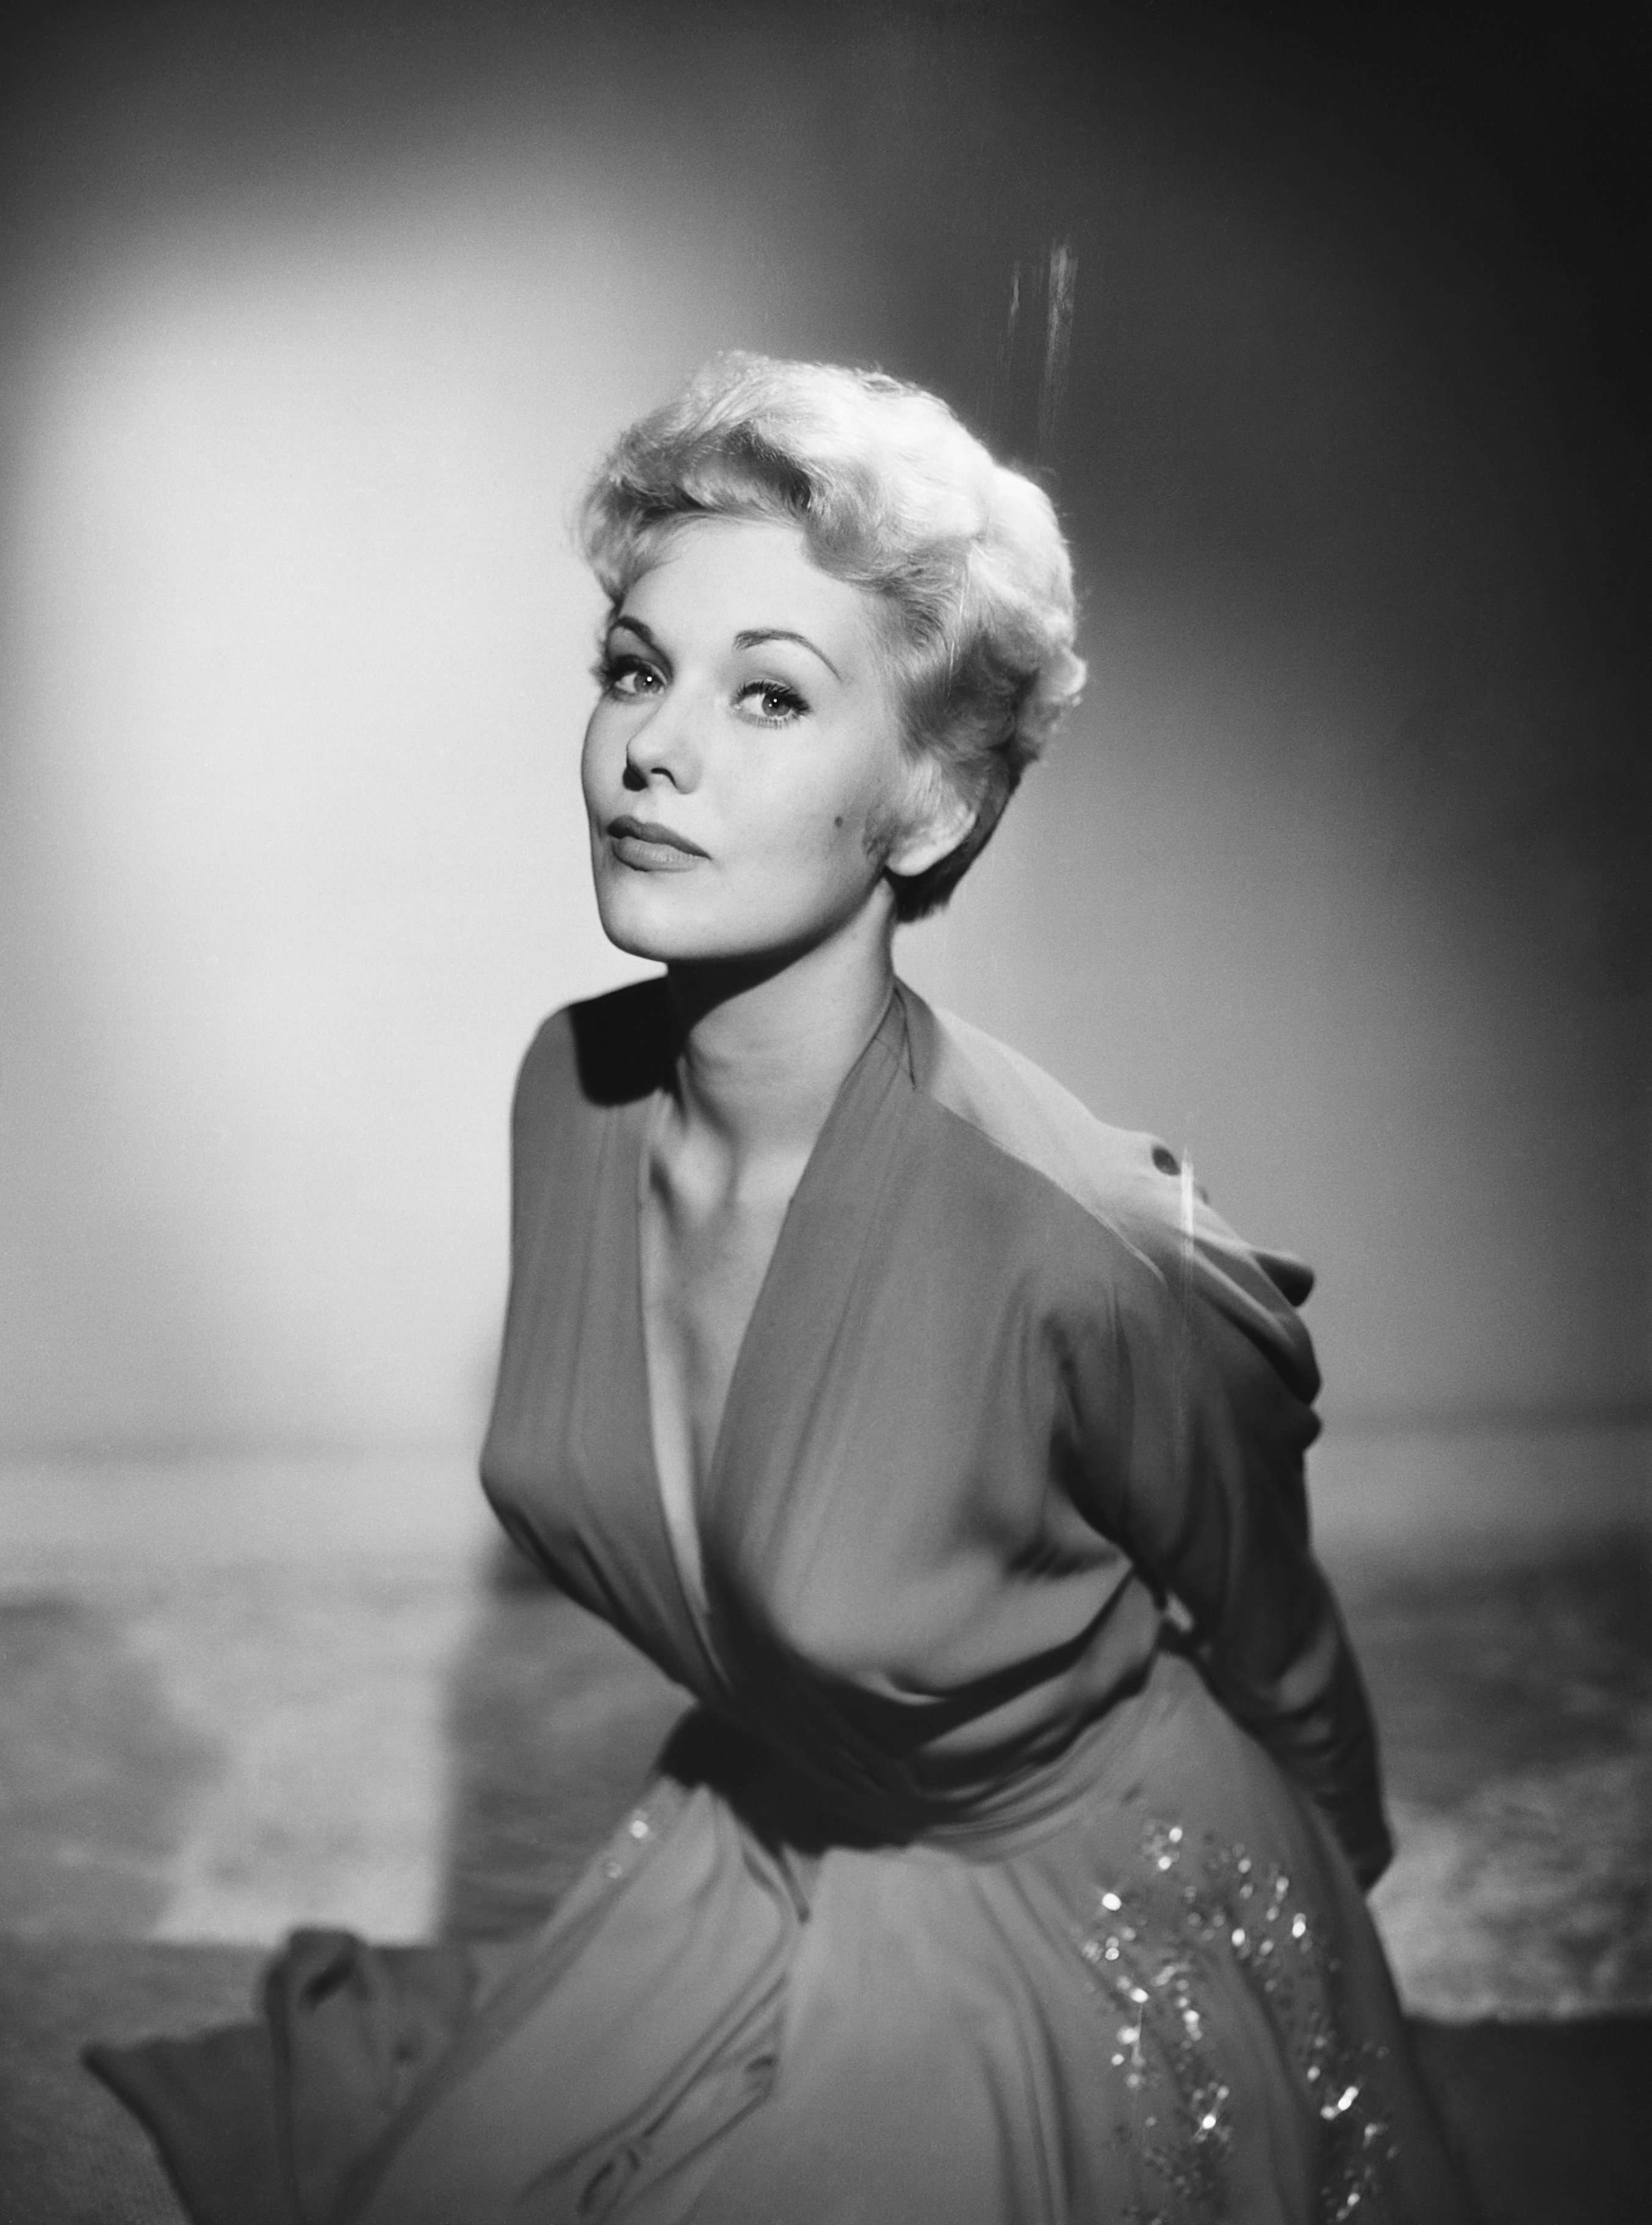 Kim Novak photographed by Baron, 1954.  Source: Getty Images